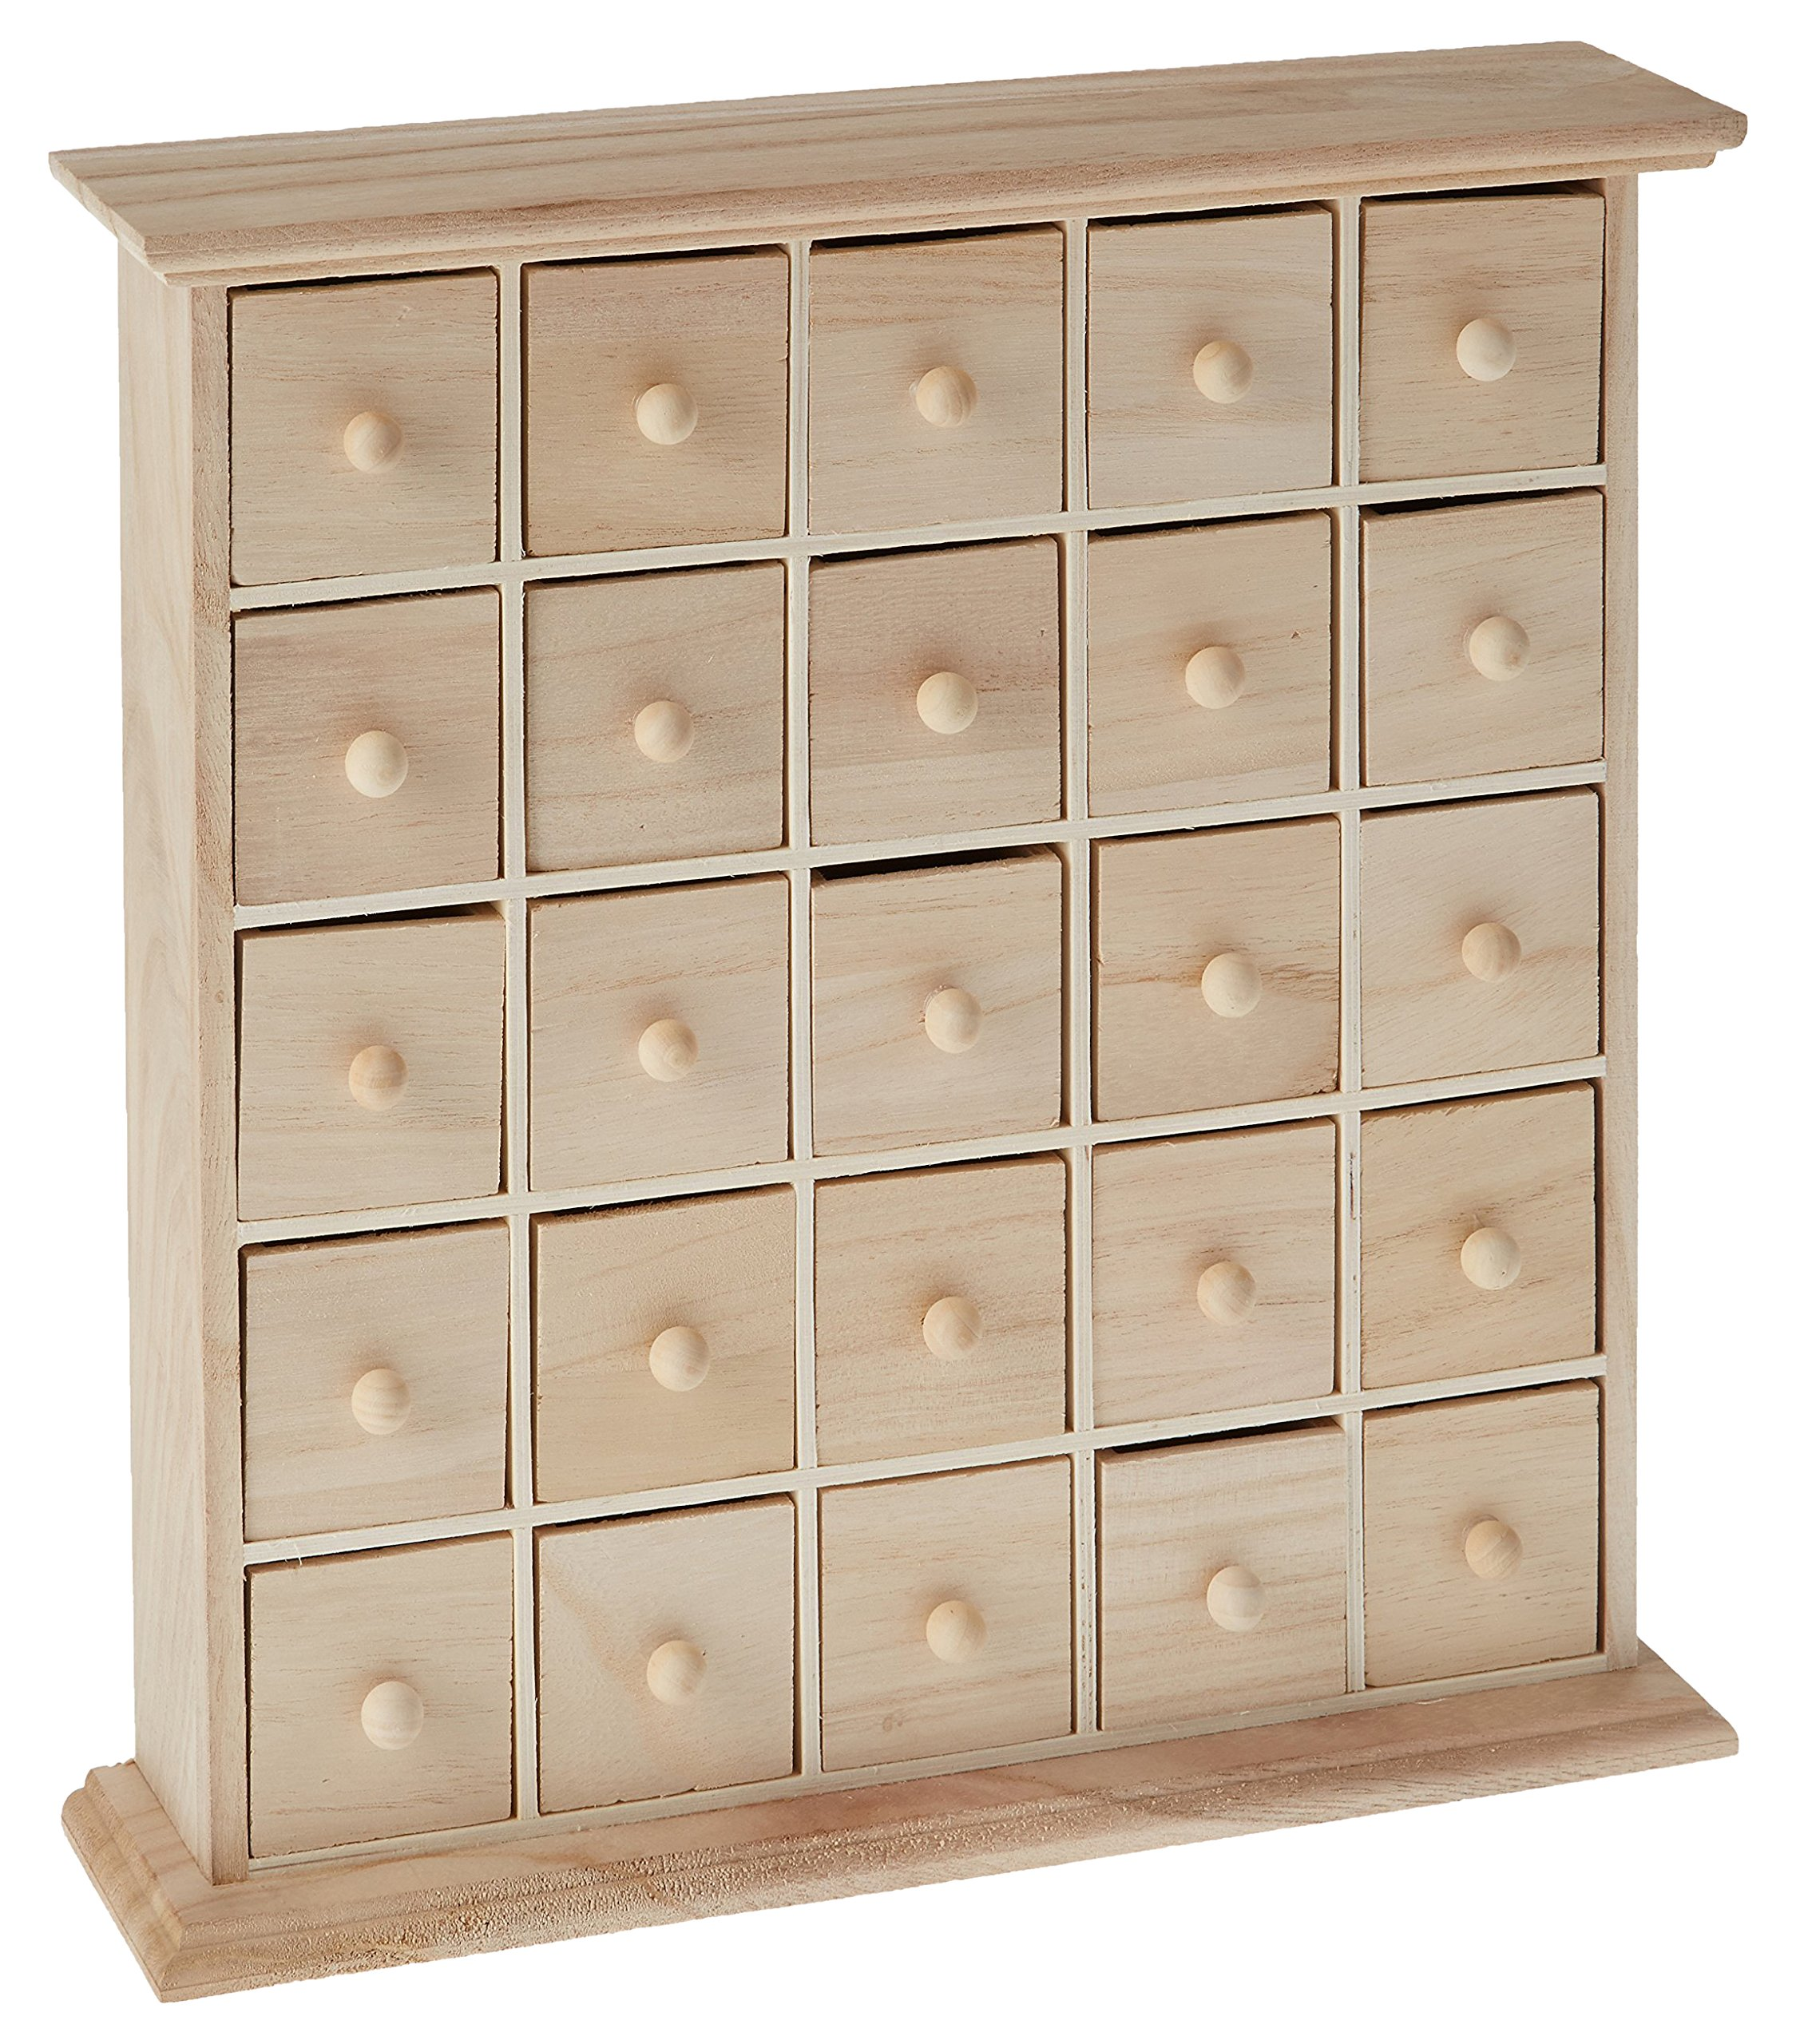 Artemio 14001073 Wooden Chest 25 Drawers